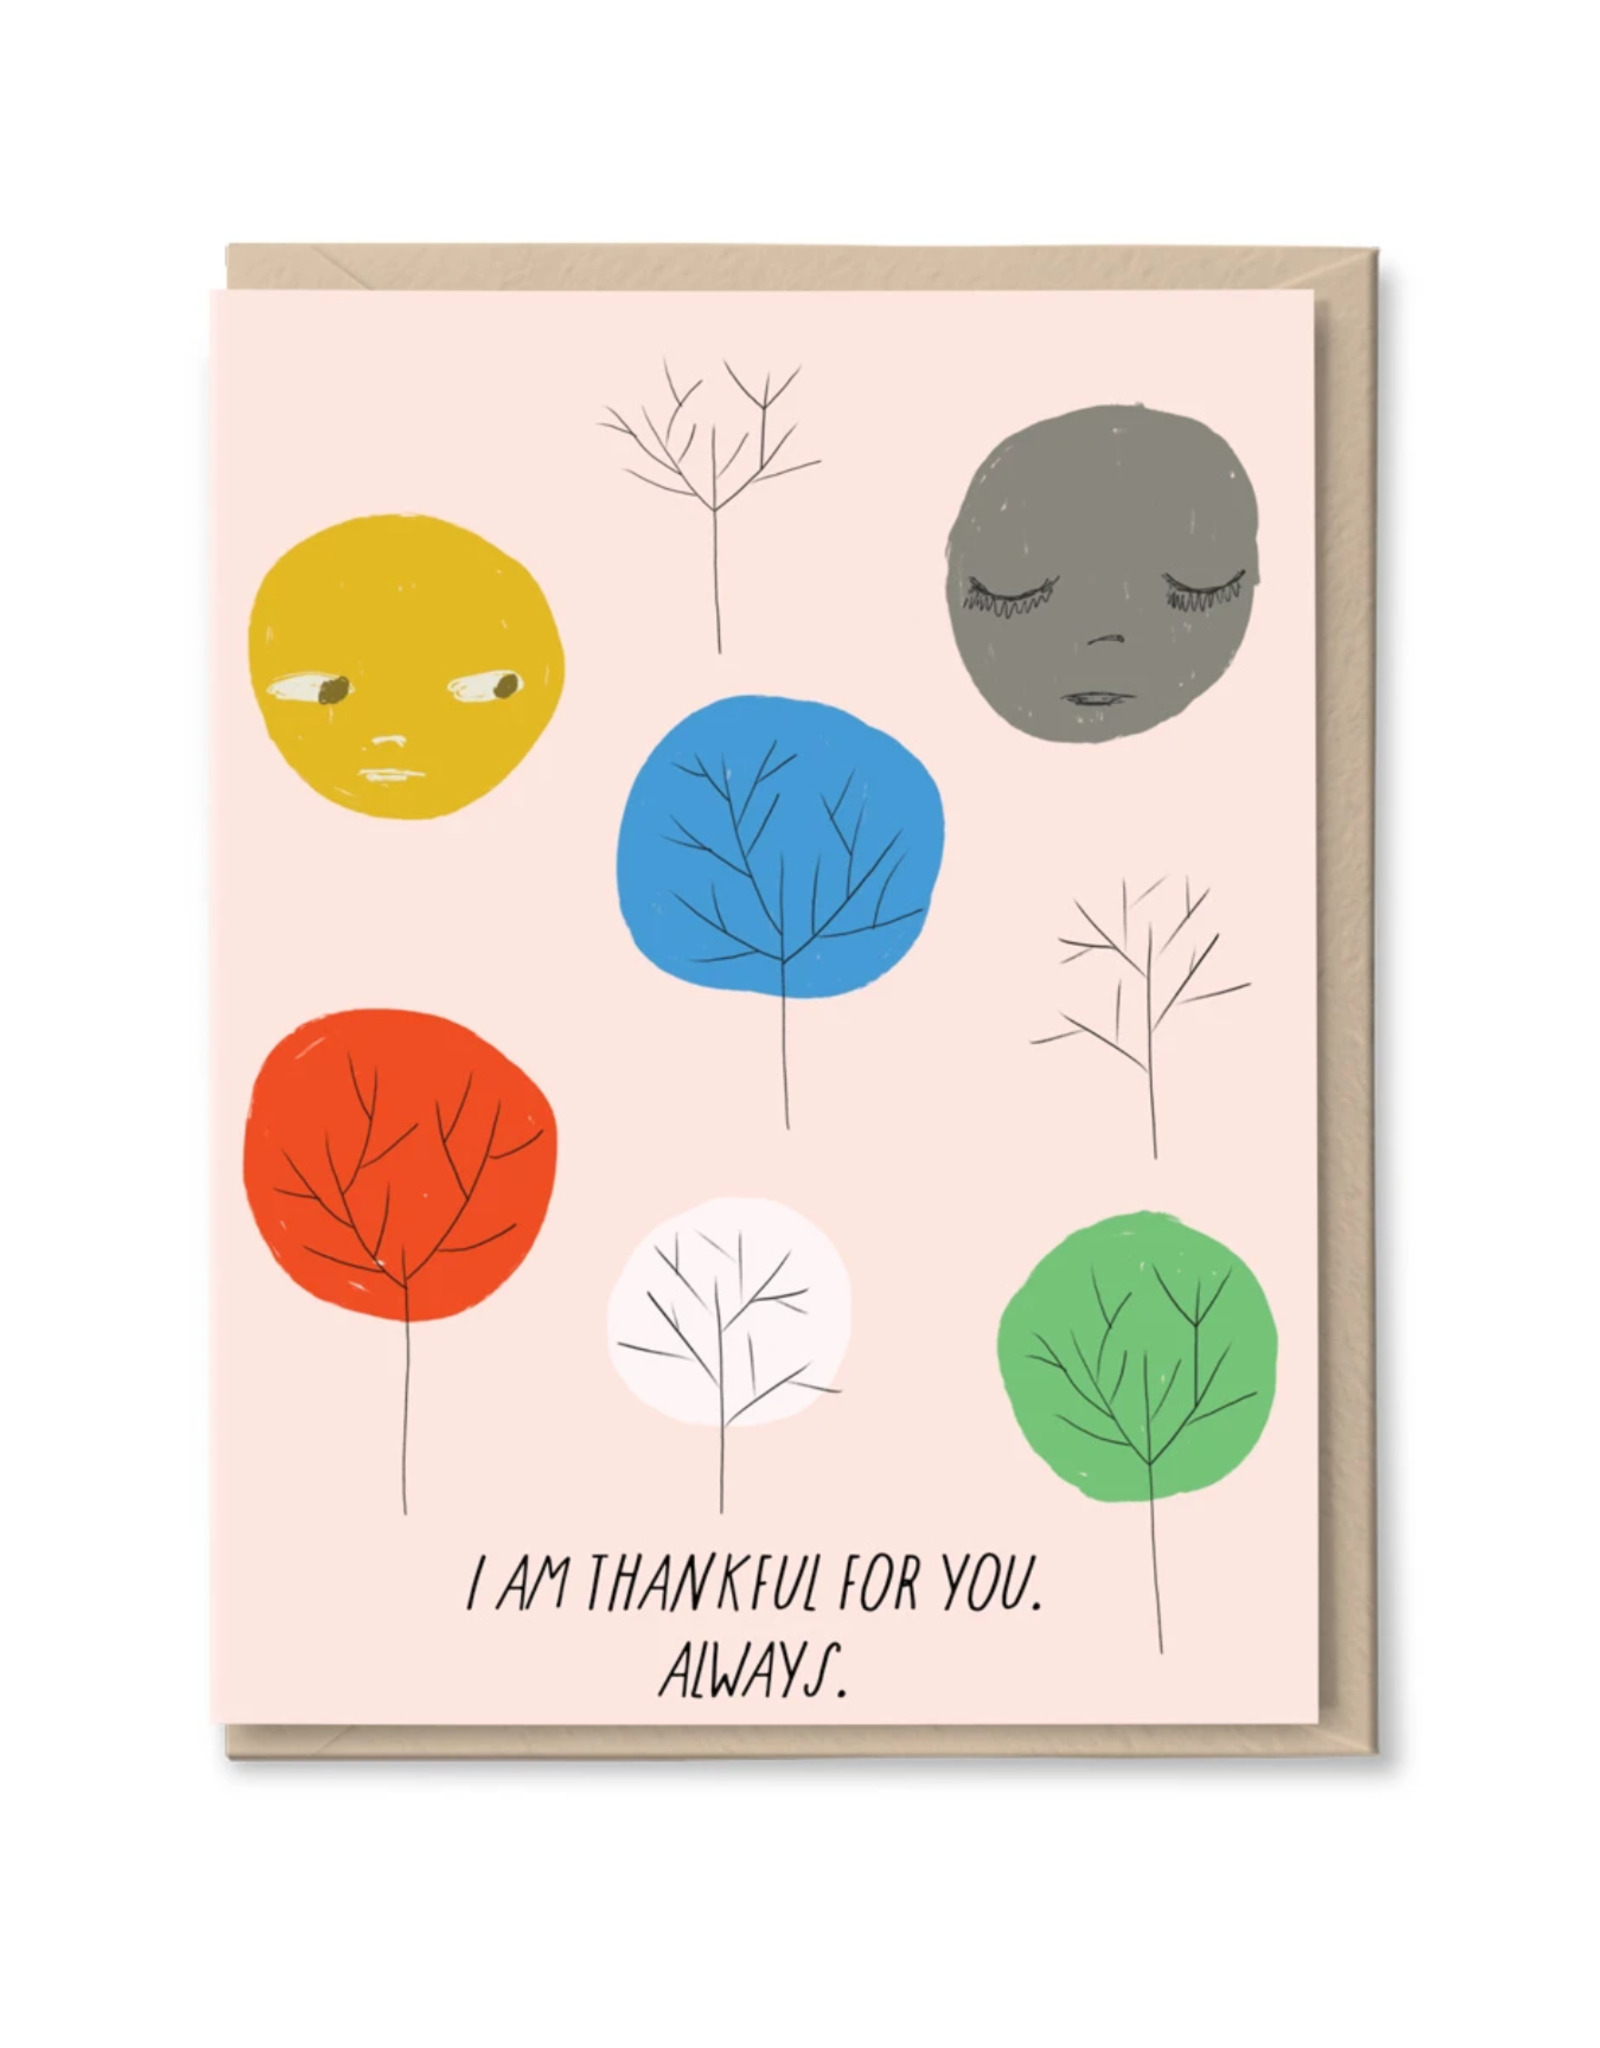 I Am Thankful For You Always Greeting Card